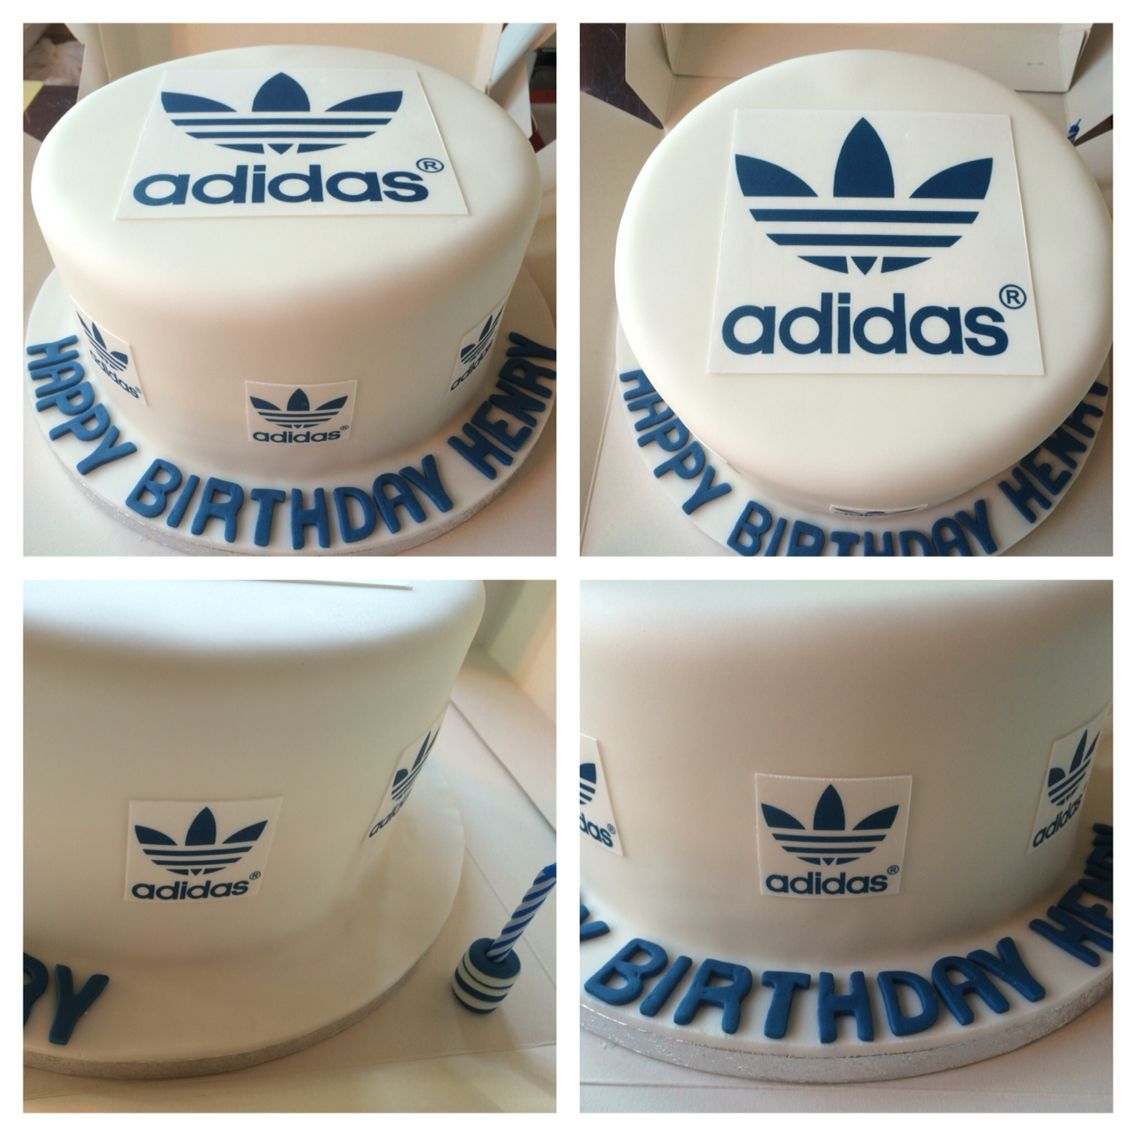 Adidas cake well ok its a good one and my edible printer